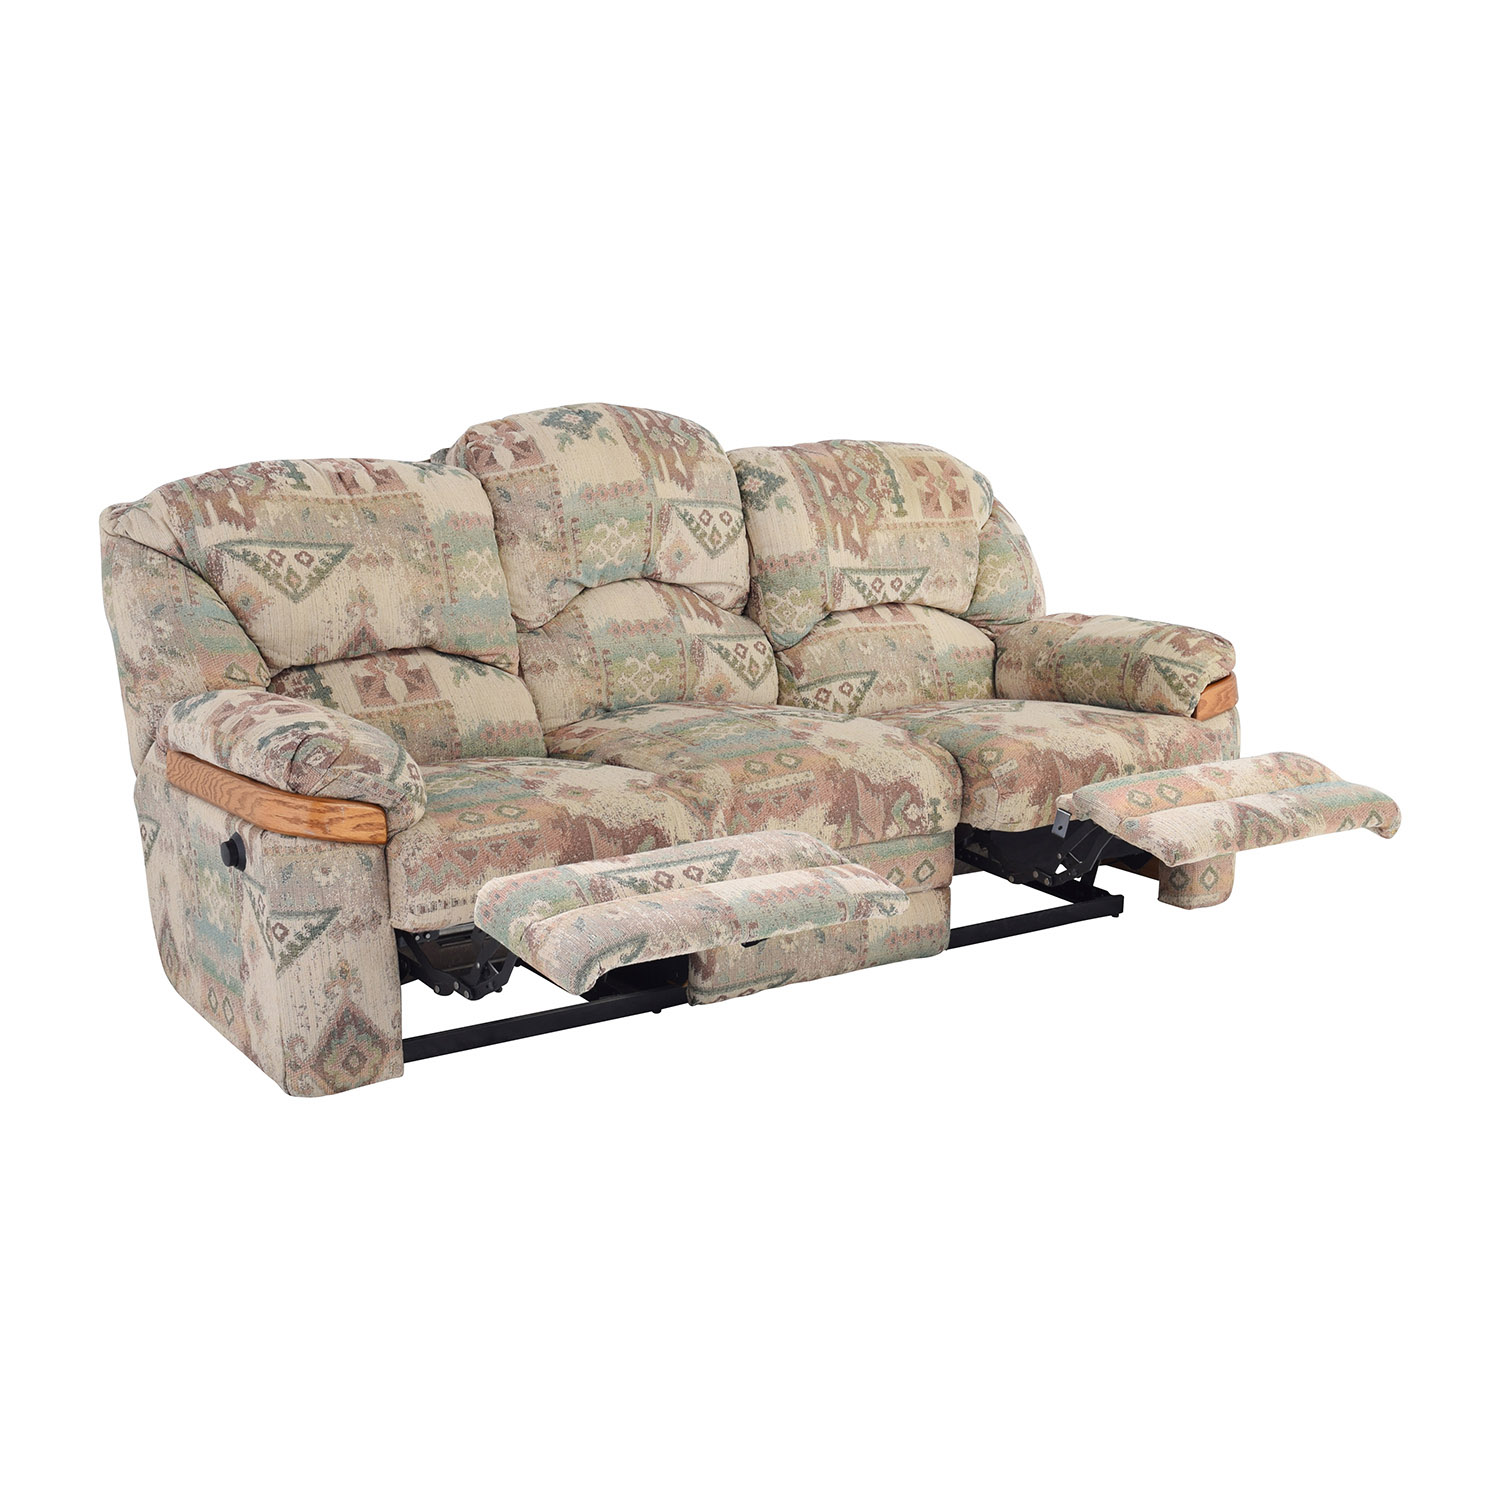 shop Patterned Fabric Recliner Sofa online